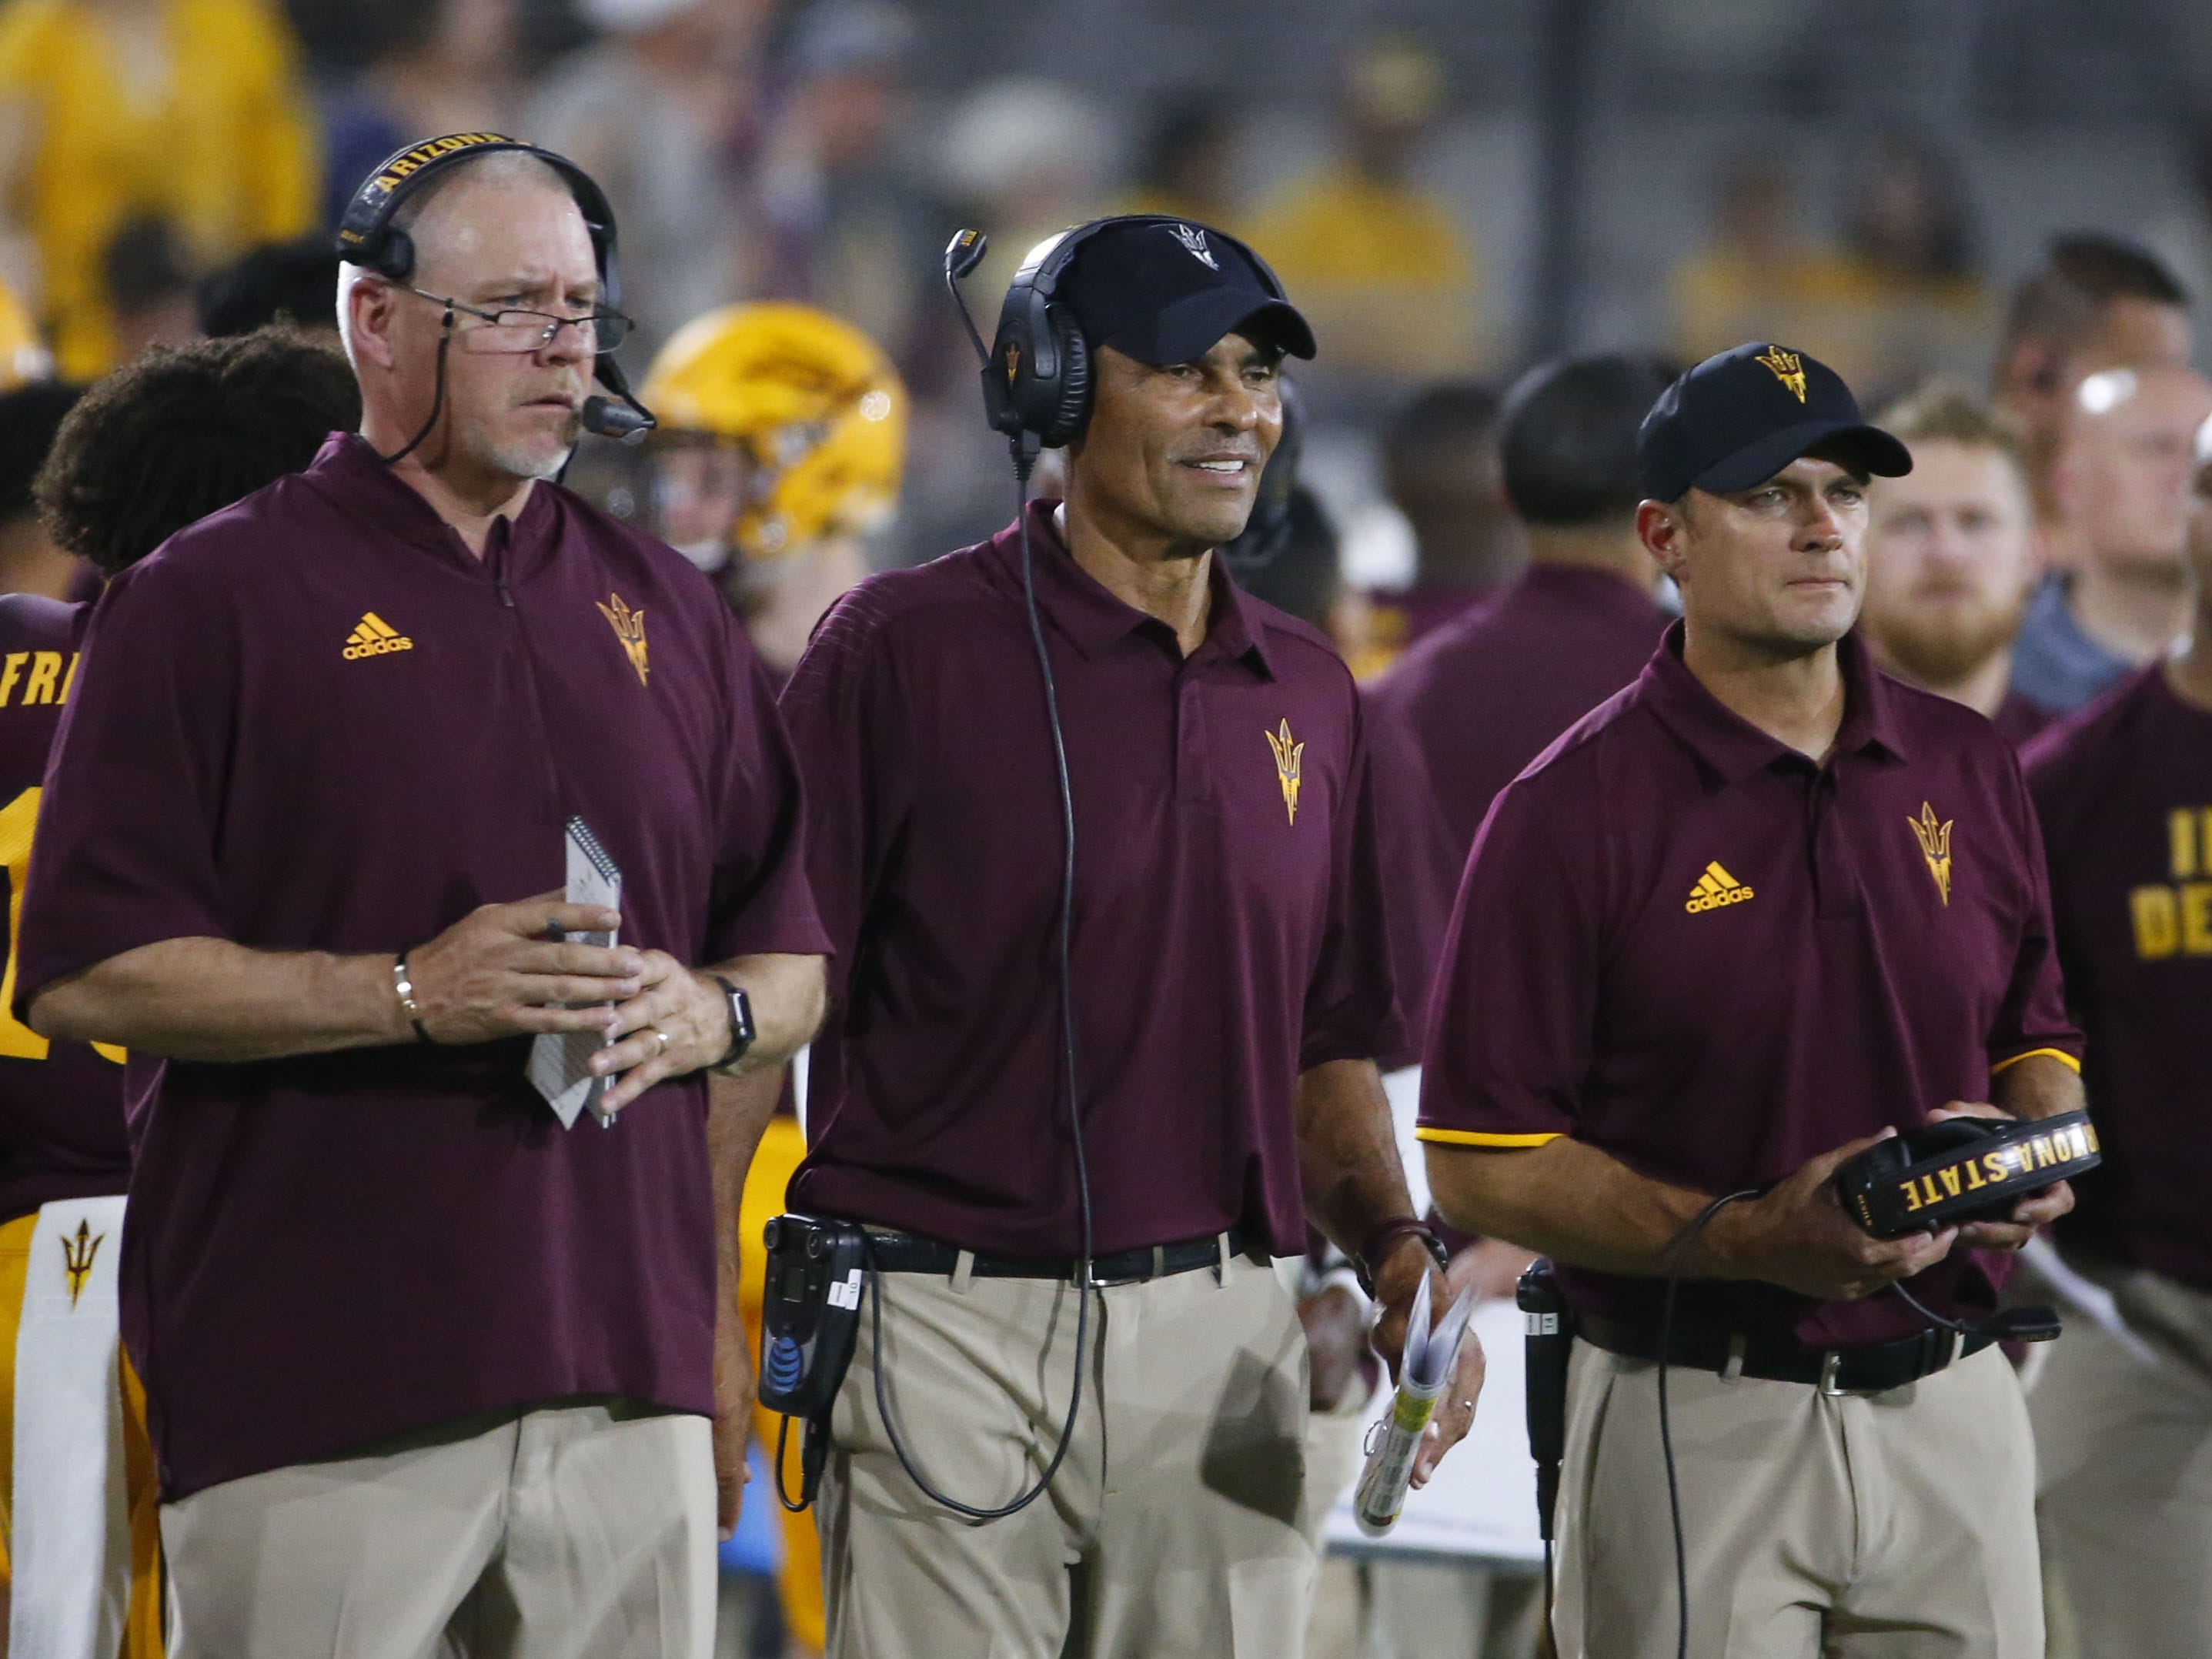 Arizona State Sun Devils head coach Herm Edwards, center, watches his team from the sidelines during a football game against the UTSA Roadrunners at Sun Devil Stadium in Tempe on September 1, 2018.